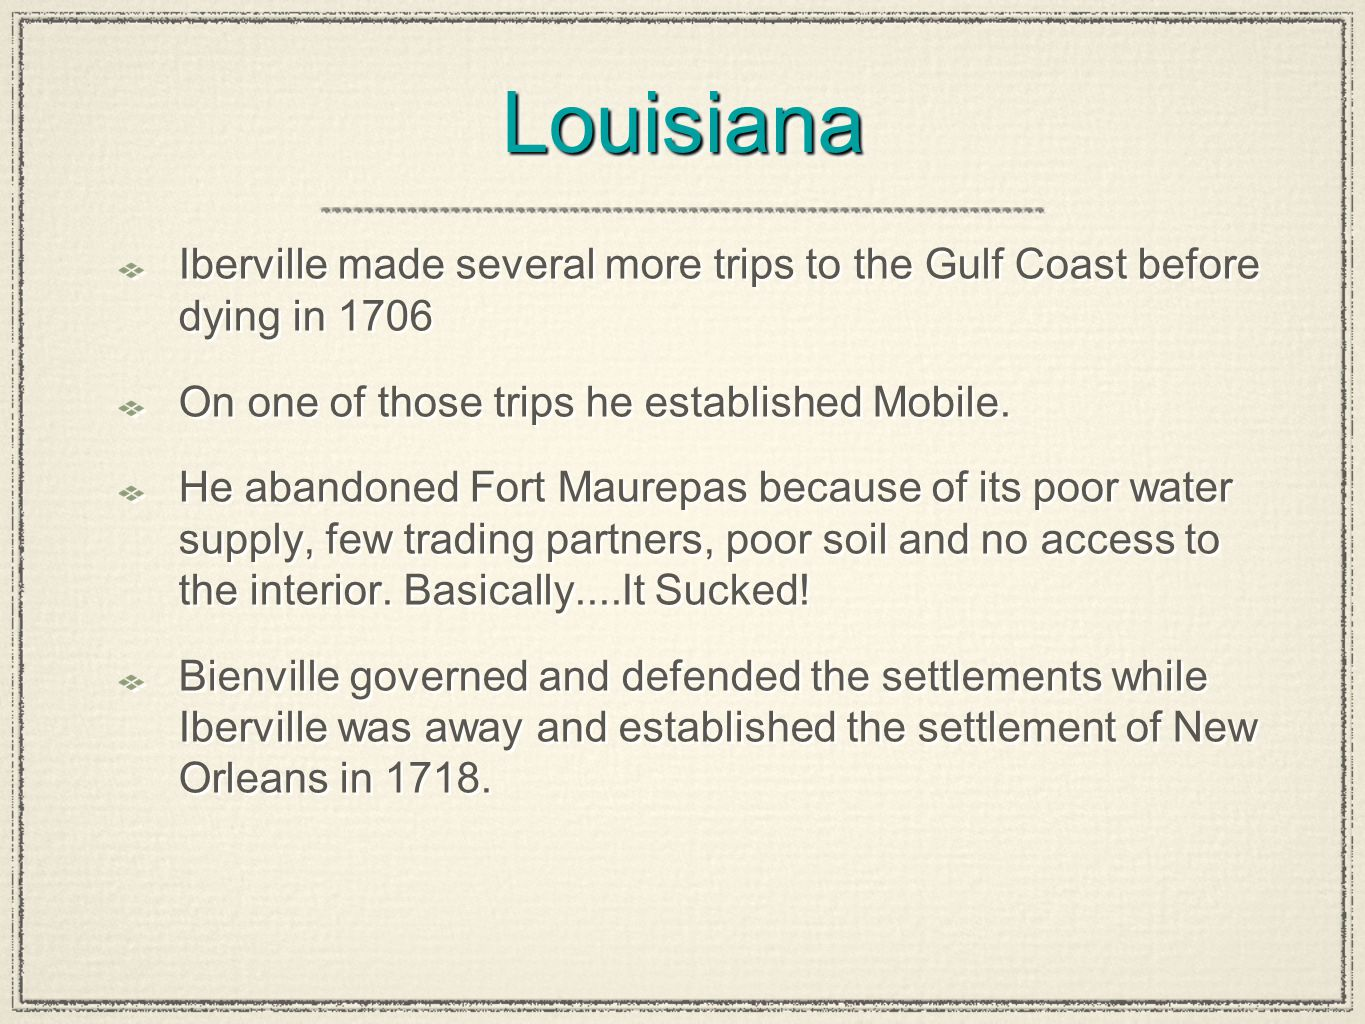 LouisianaLouisiana Iberville made several more trips to the Gulf Coast before dying in 1706 On one of those trips he established Mobile. He abandoned